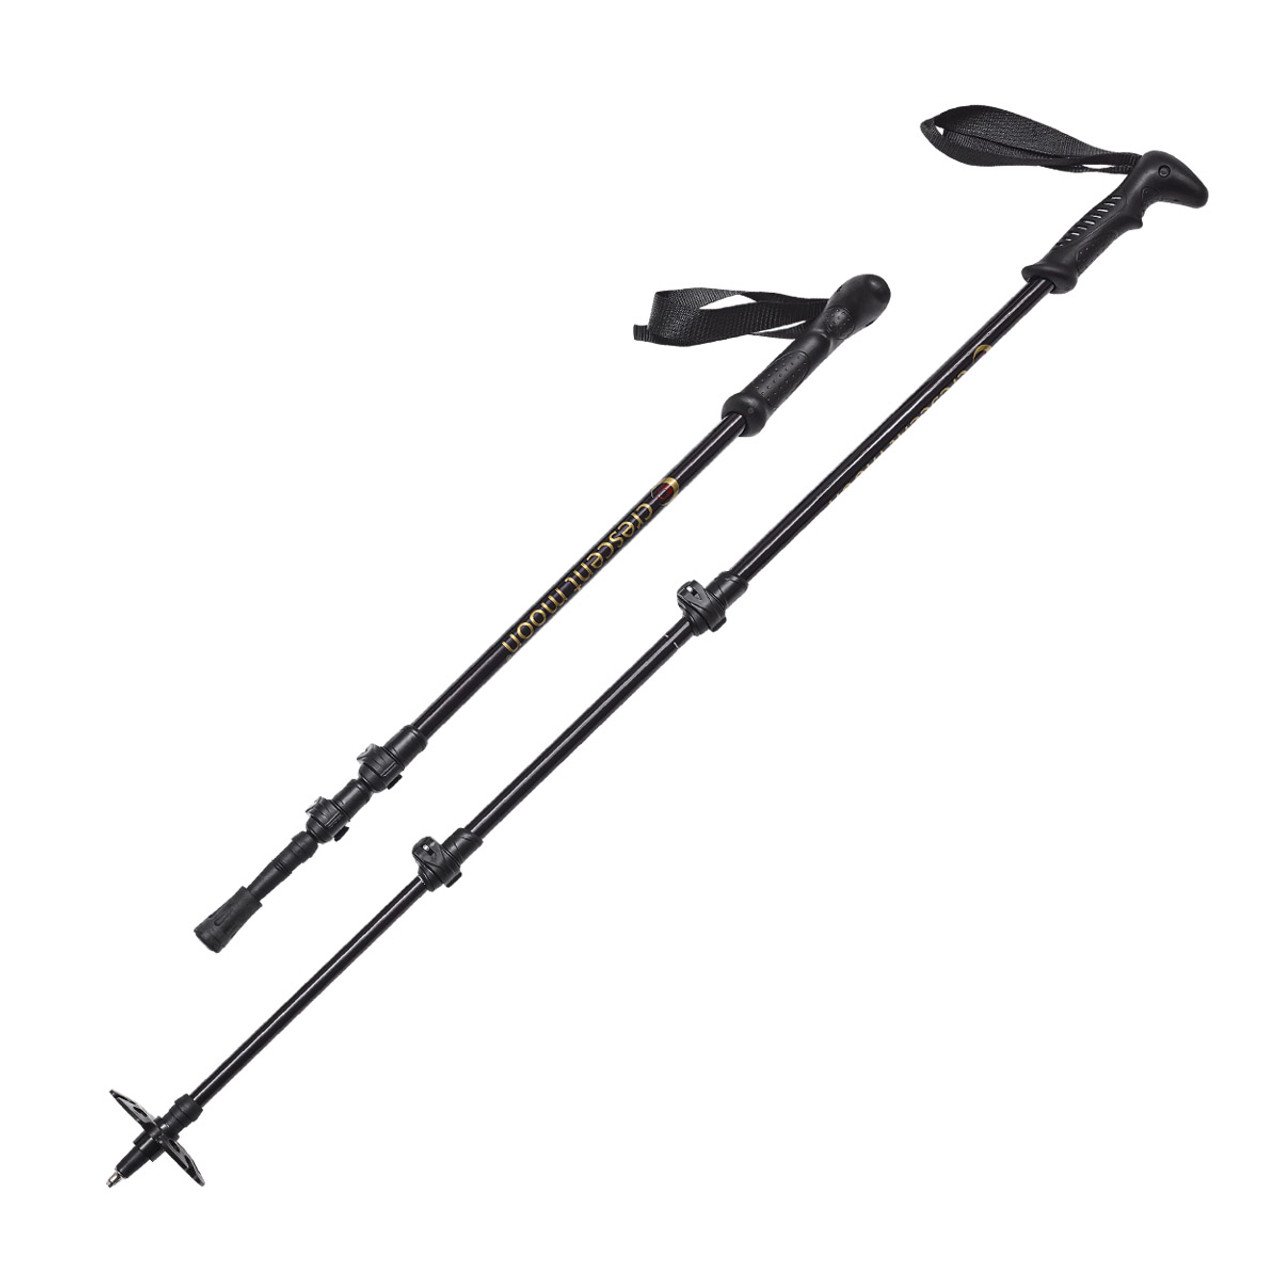 trekking poles for snowshoes hiking poles